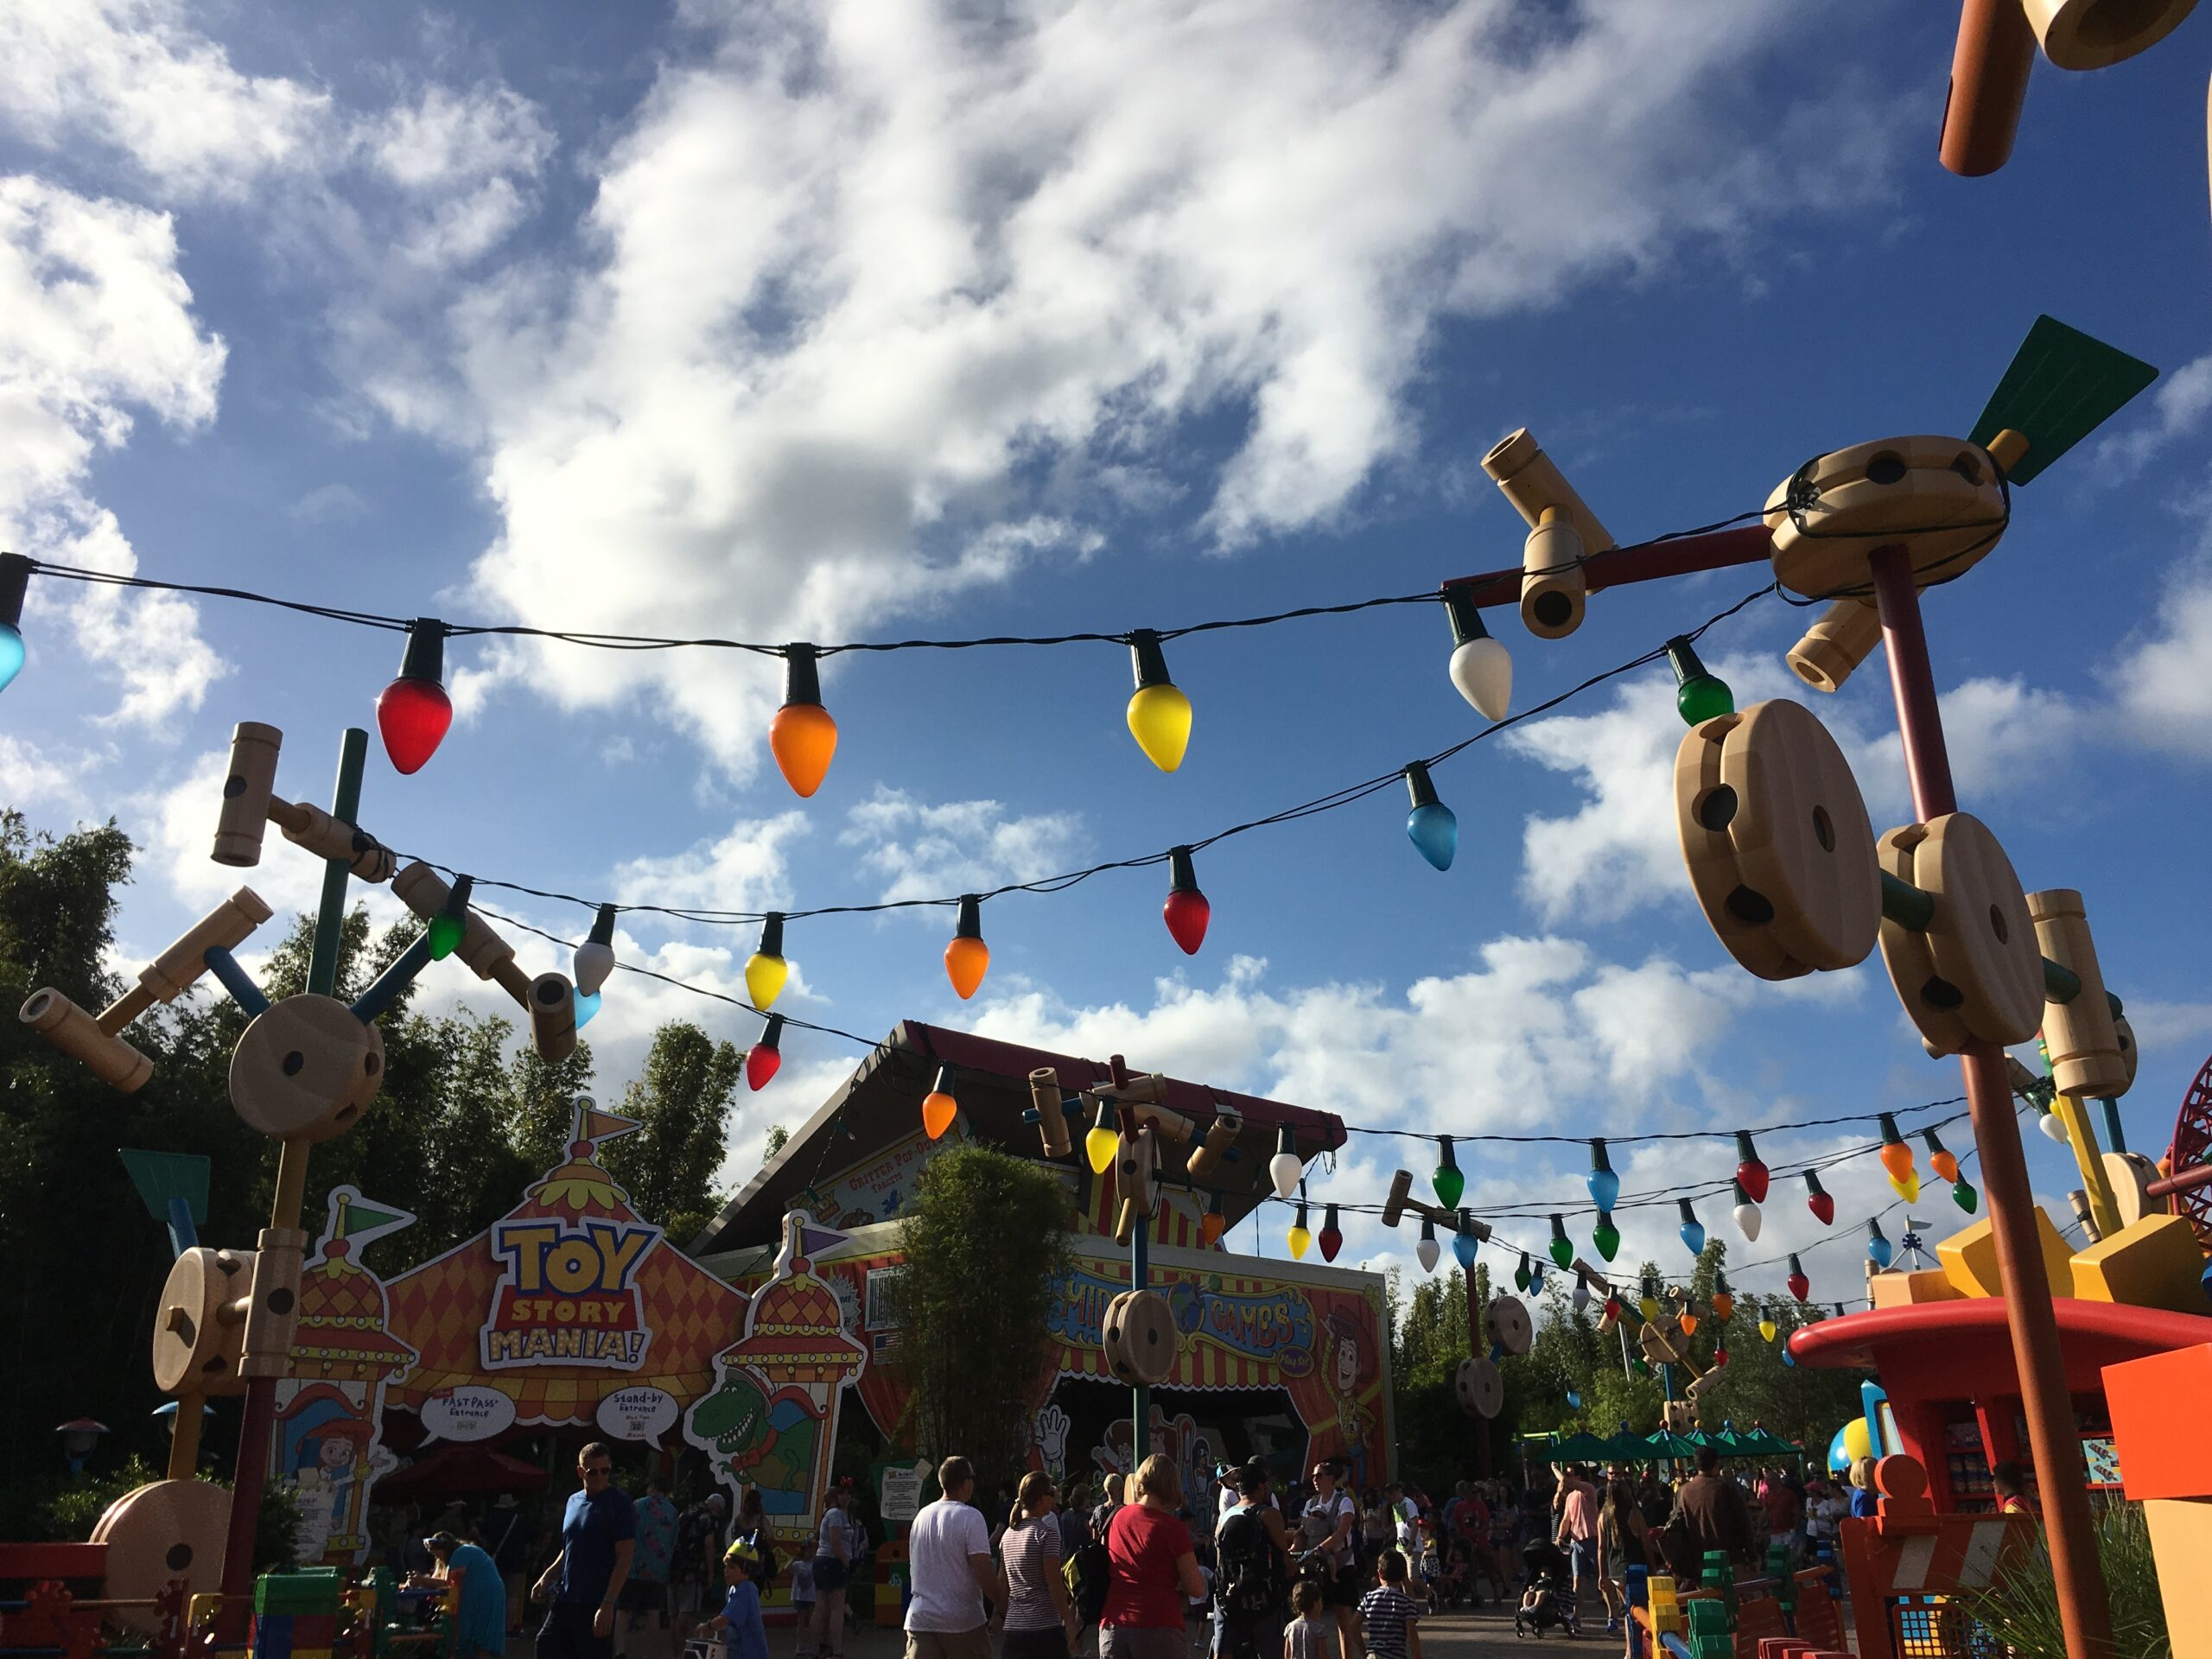 toy story land props giant tinker toys and strings of oversized christmas lights